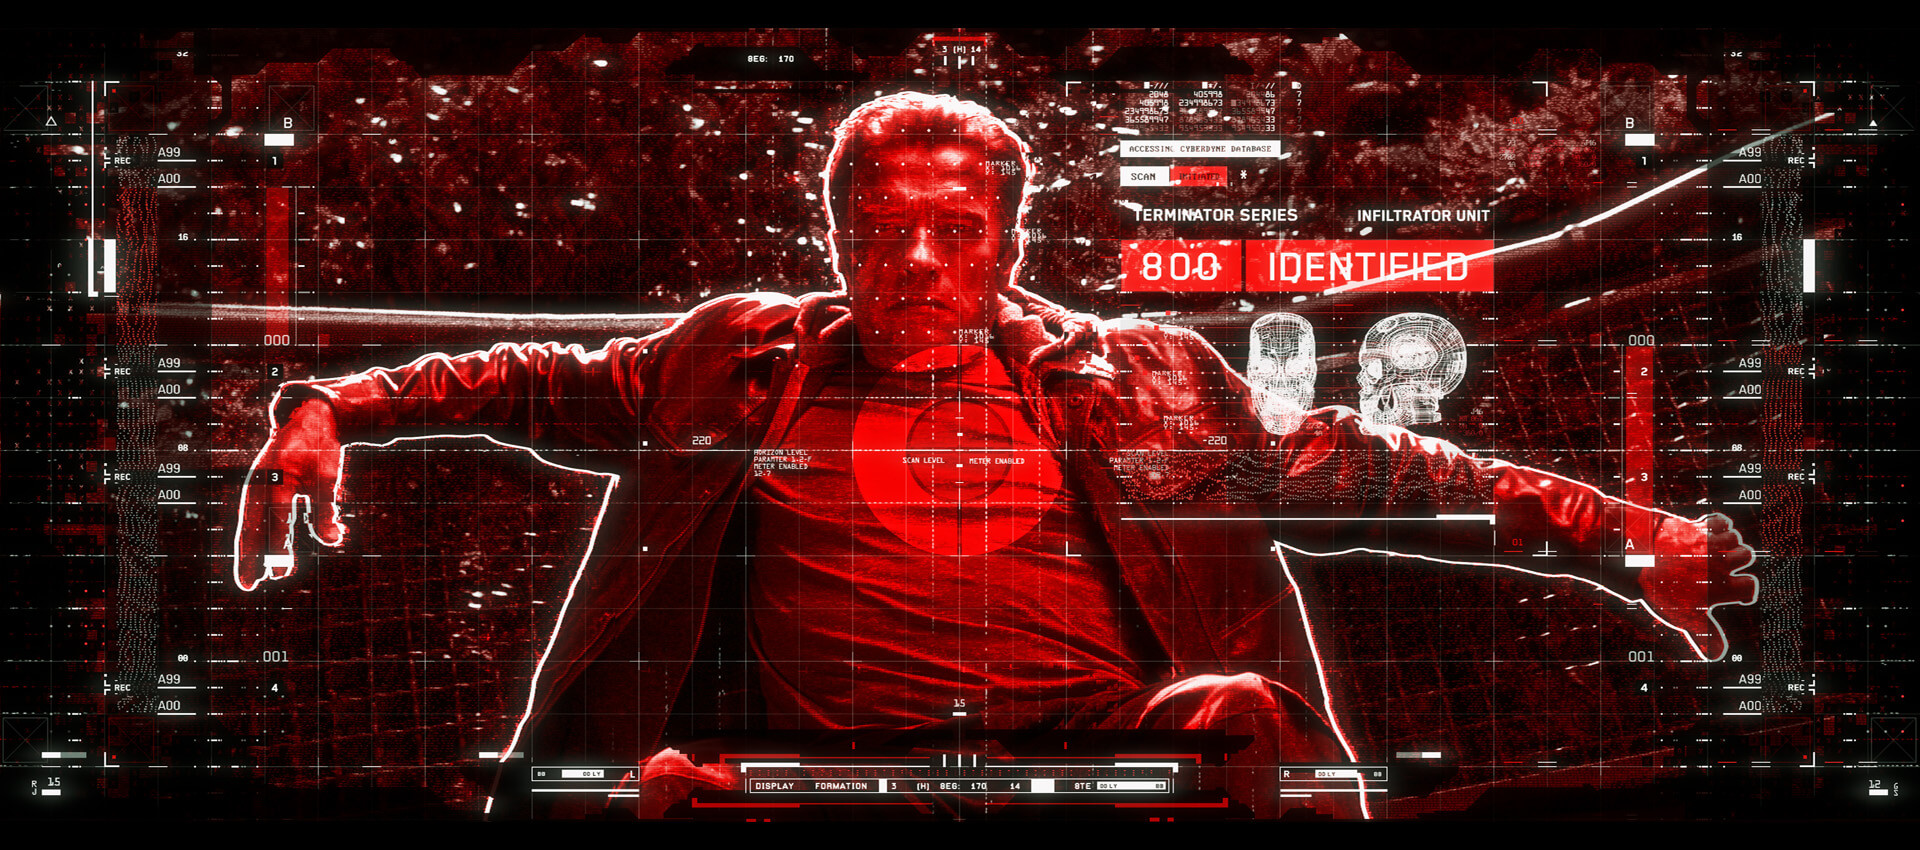 Terminator Genisys UI/UX inspiration: Movies every designer should watch